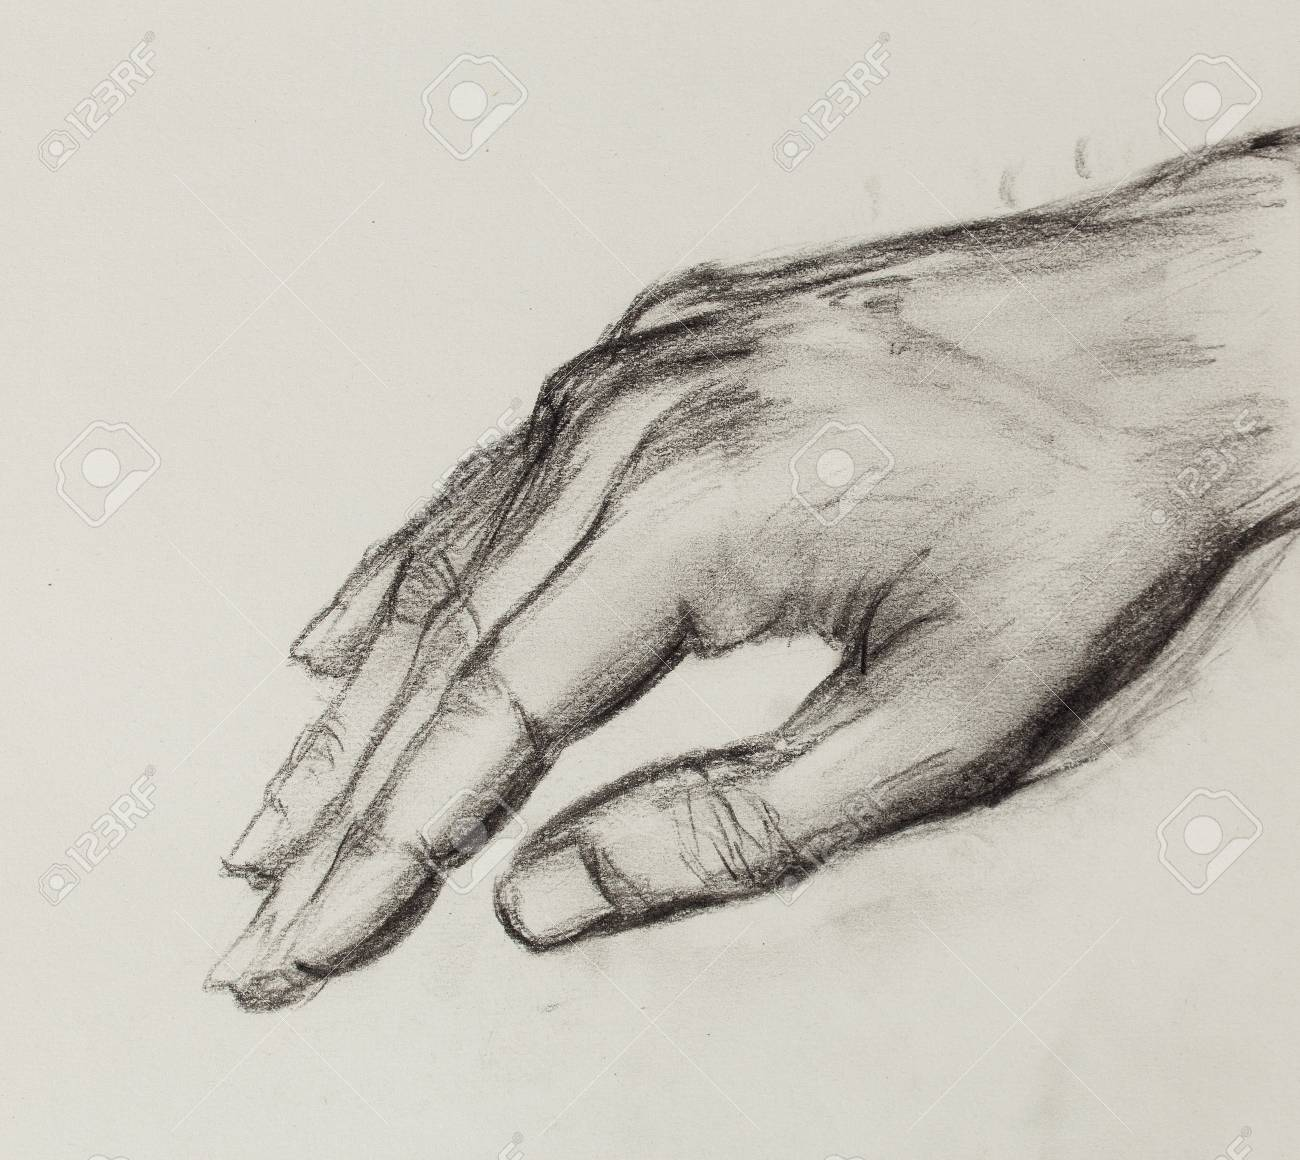 Drawing hand pencil sketch on old paper stock photo 54742140